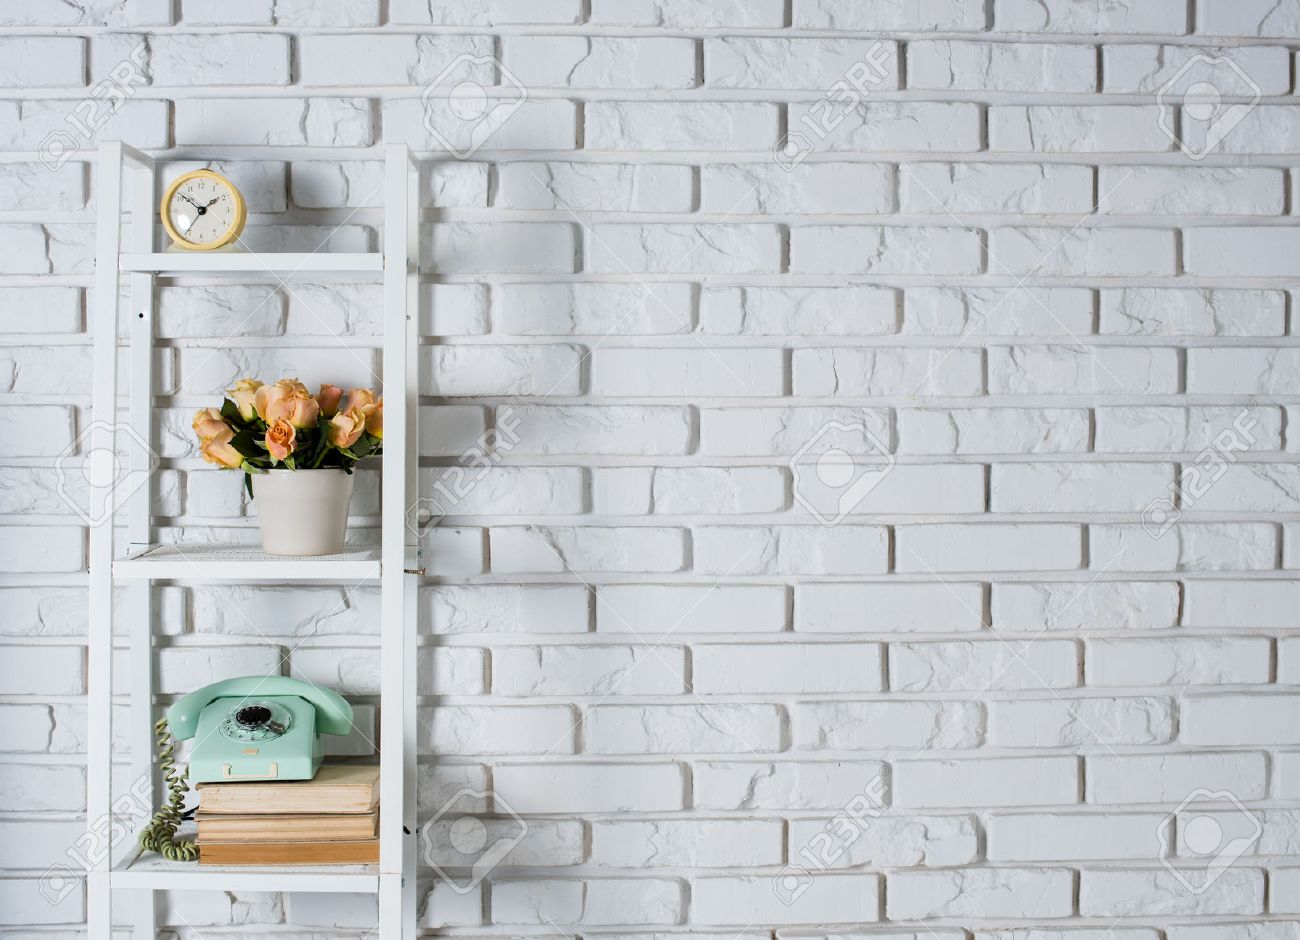 Attractive Shelf With Interior Decoration In Front Of A White Brick Wall, Vintage  Decor Stock Photo